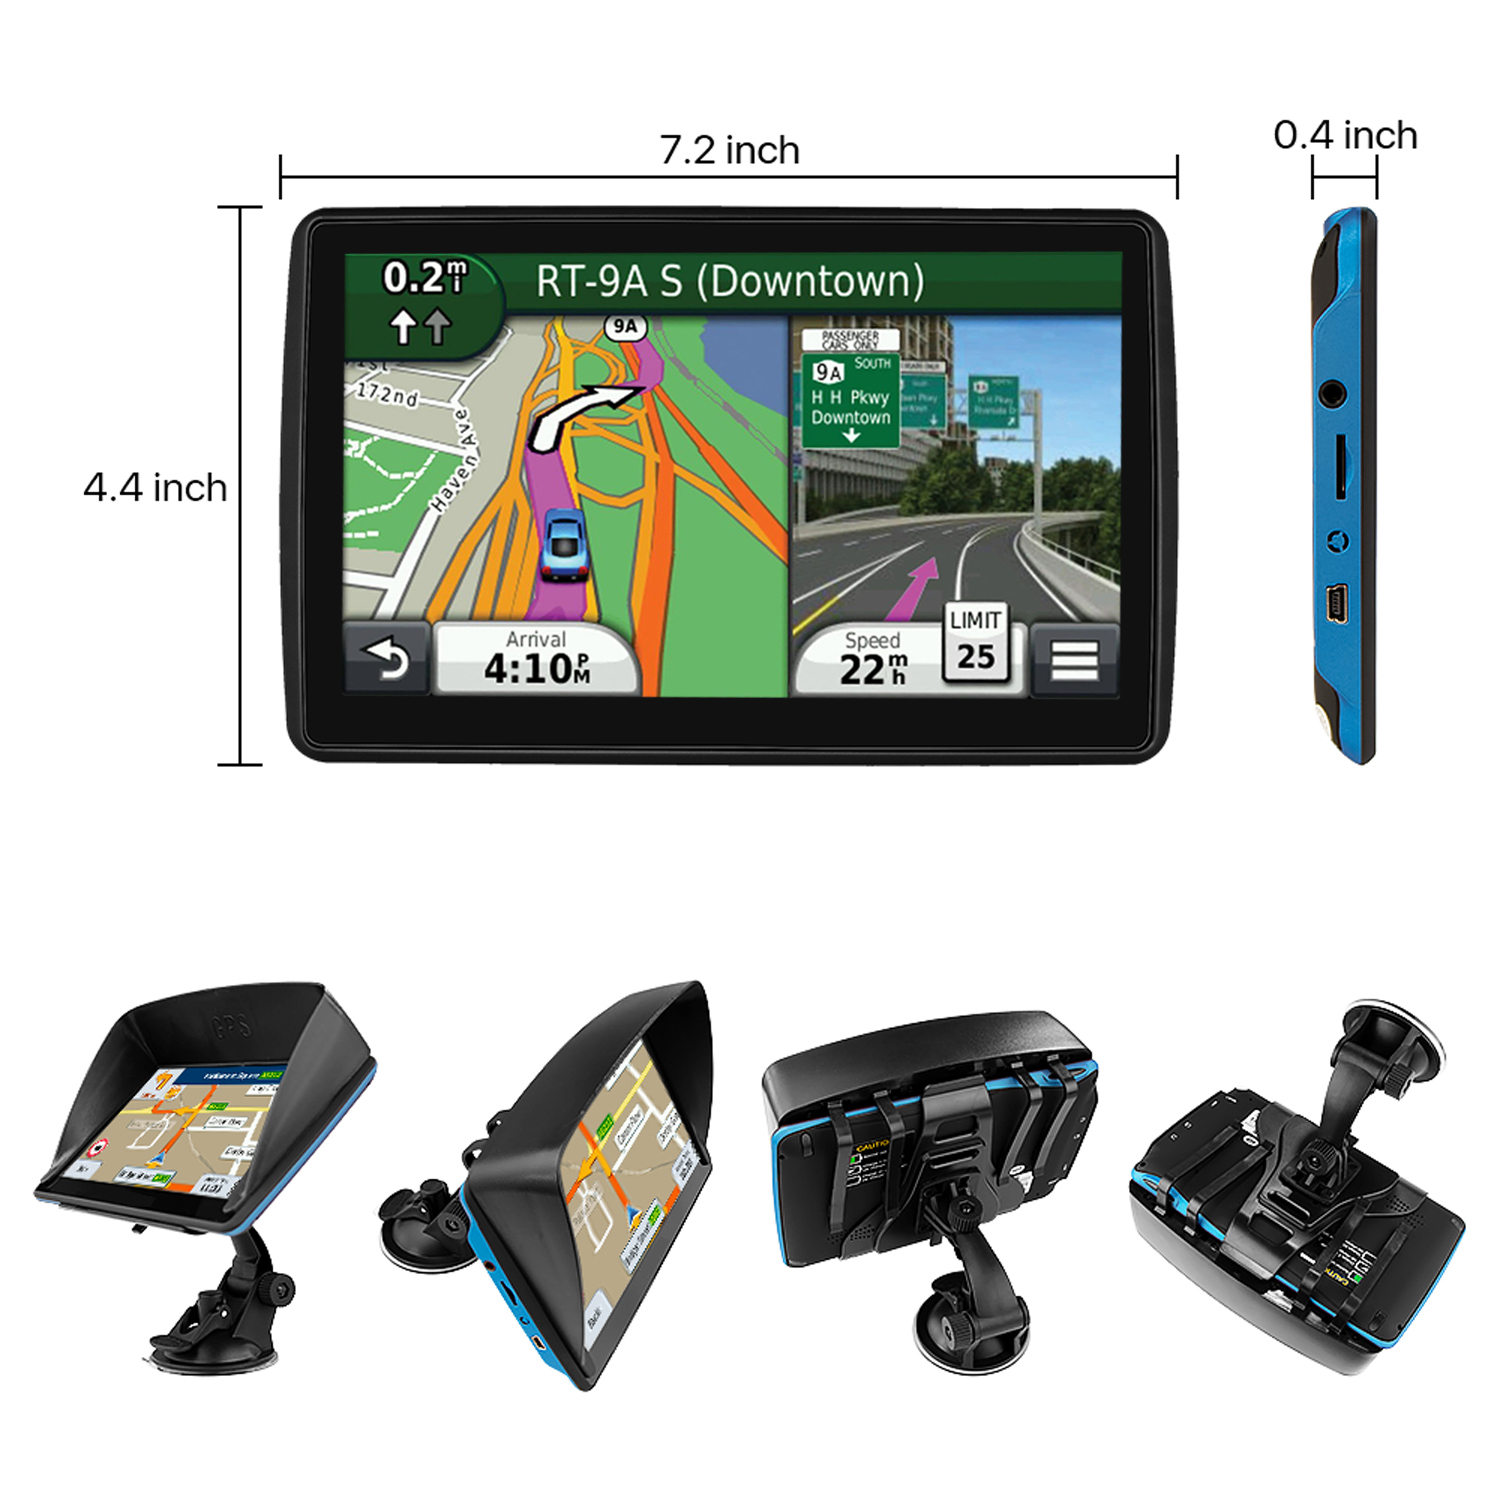 Australia GPS Navigator 128M 8GB FM with Lifetime Map Update for Cars Trucks Vehicles 7 Inch Touch Screen GPS Navigation Maps System Device International